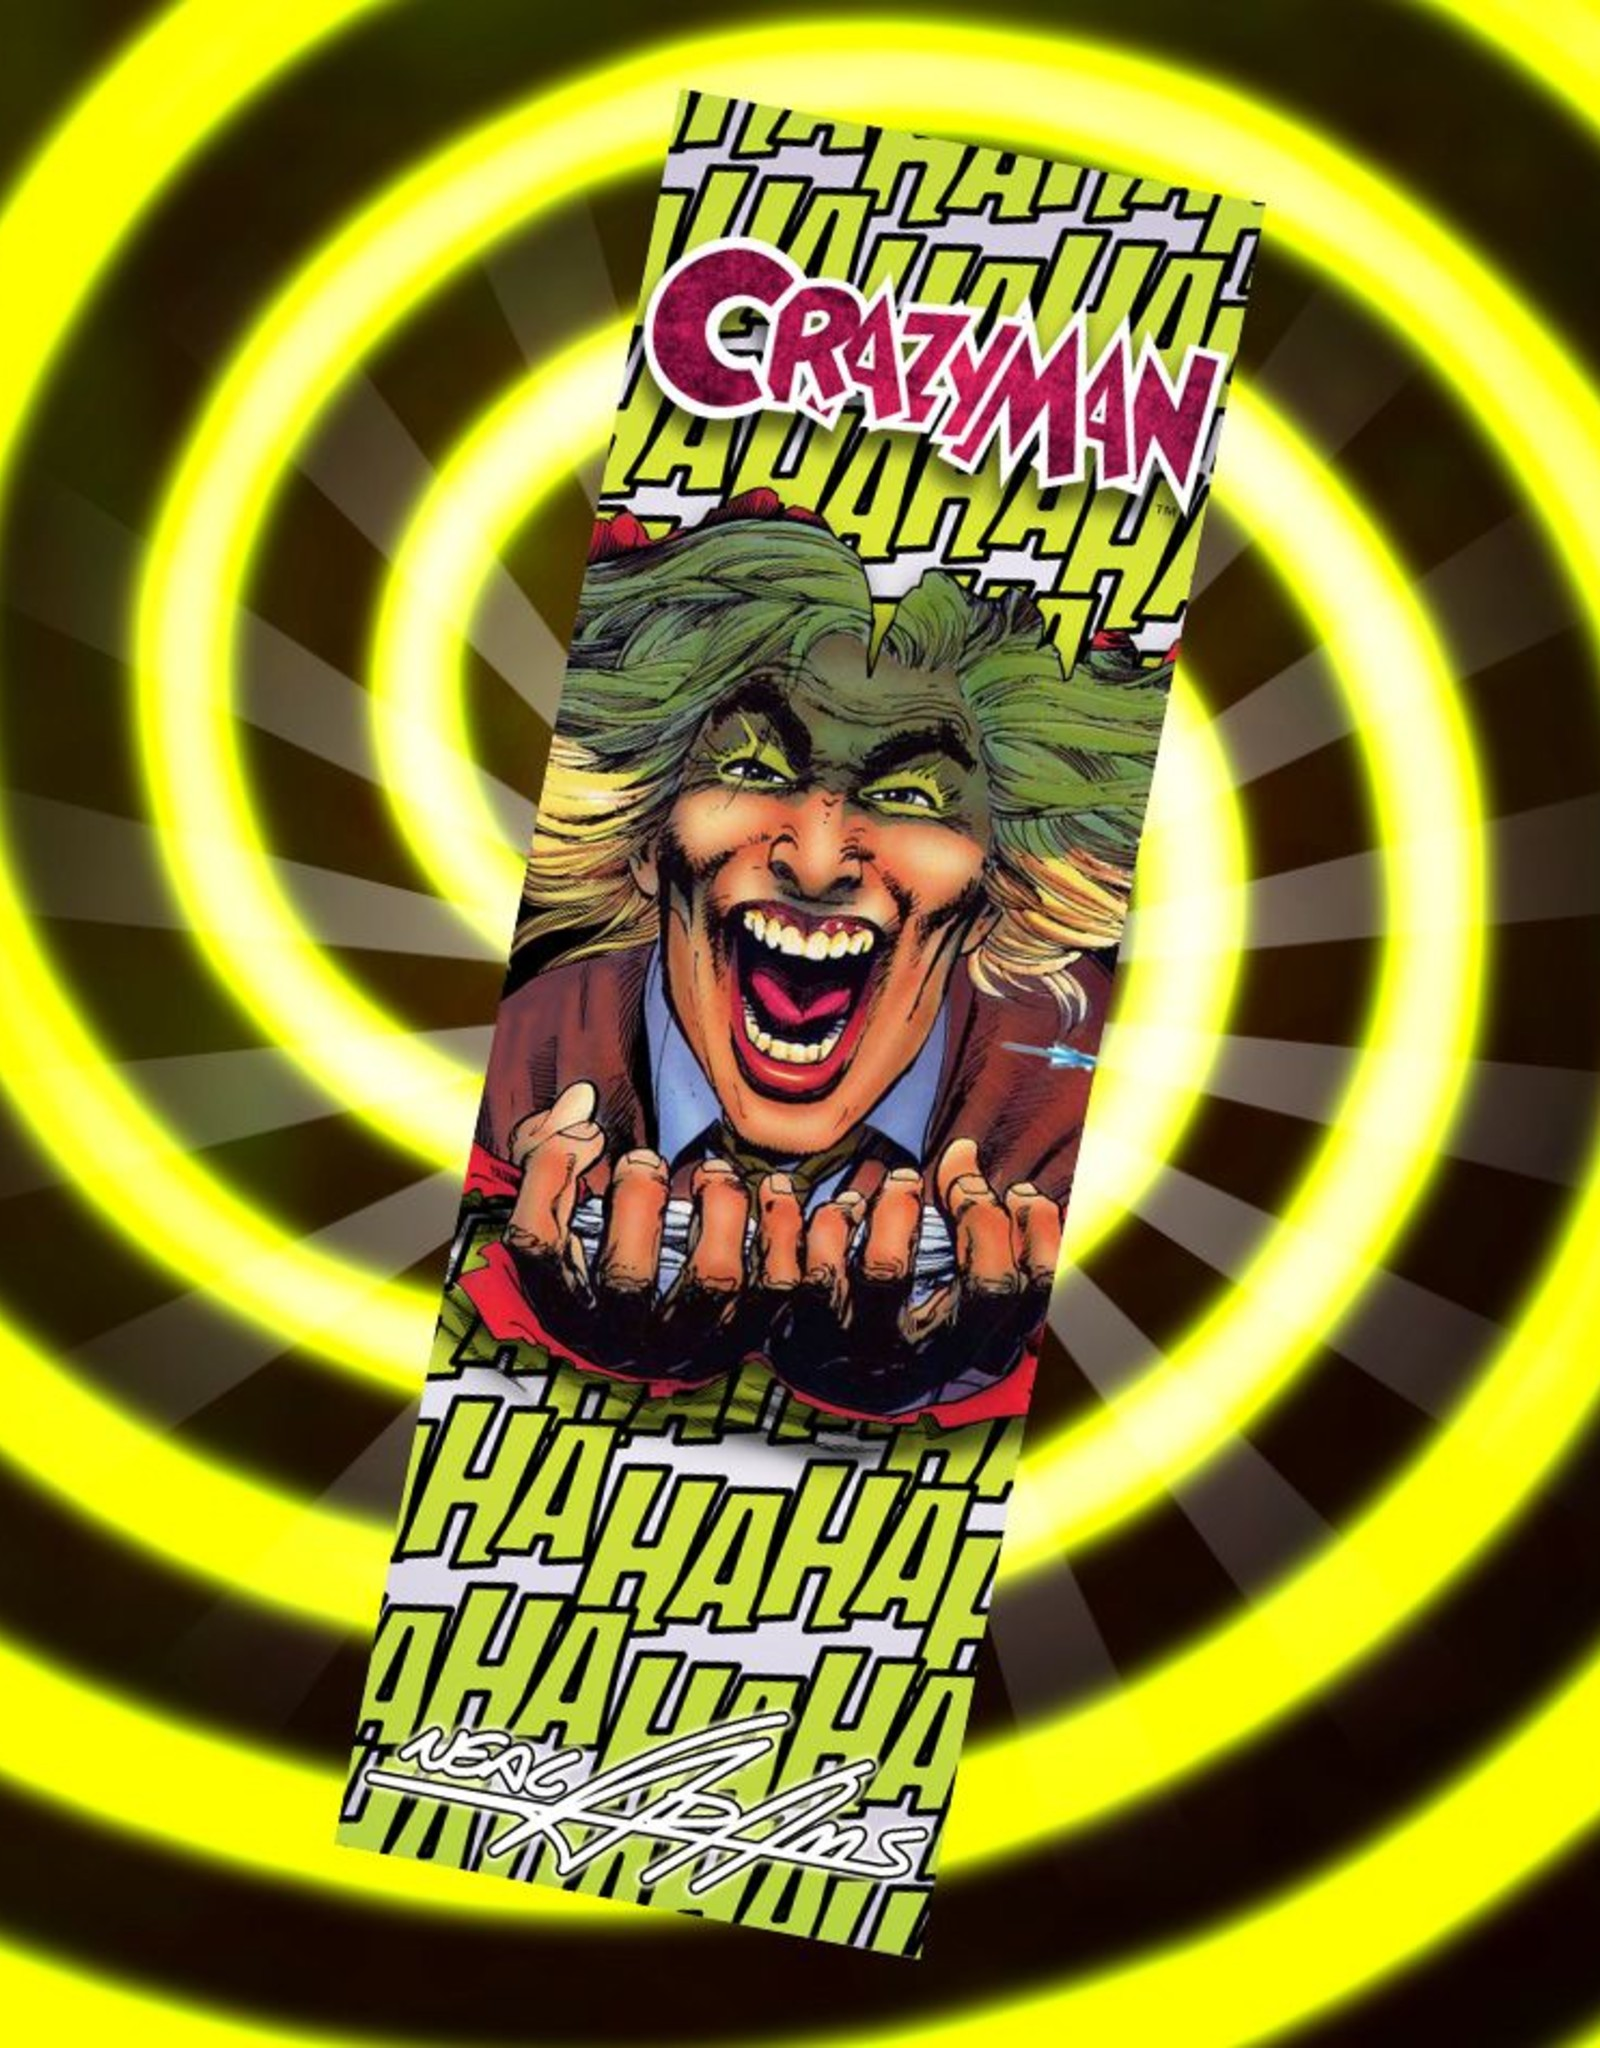 Neal Adams Bar - Crazyman